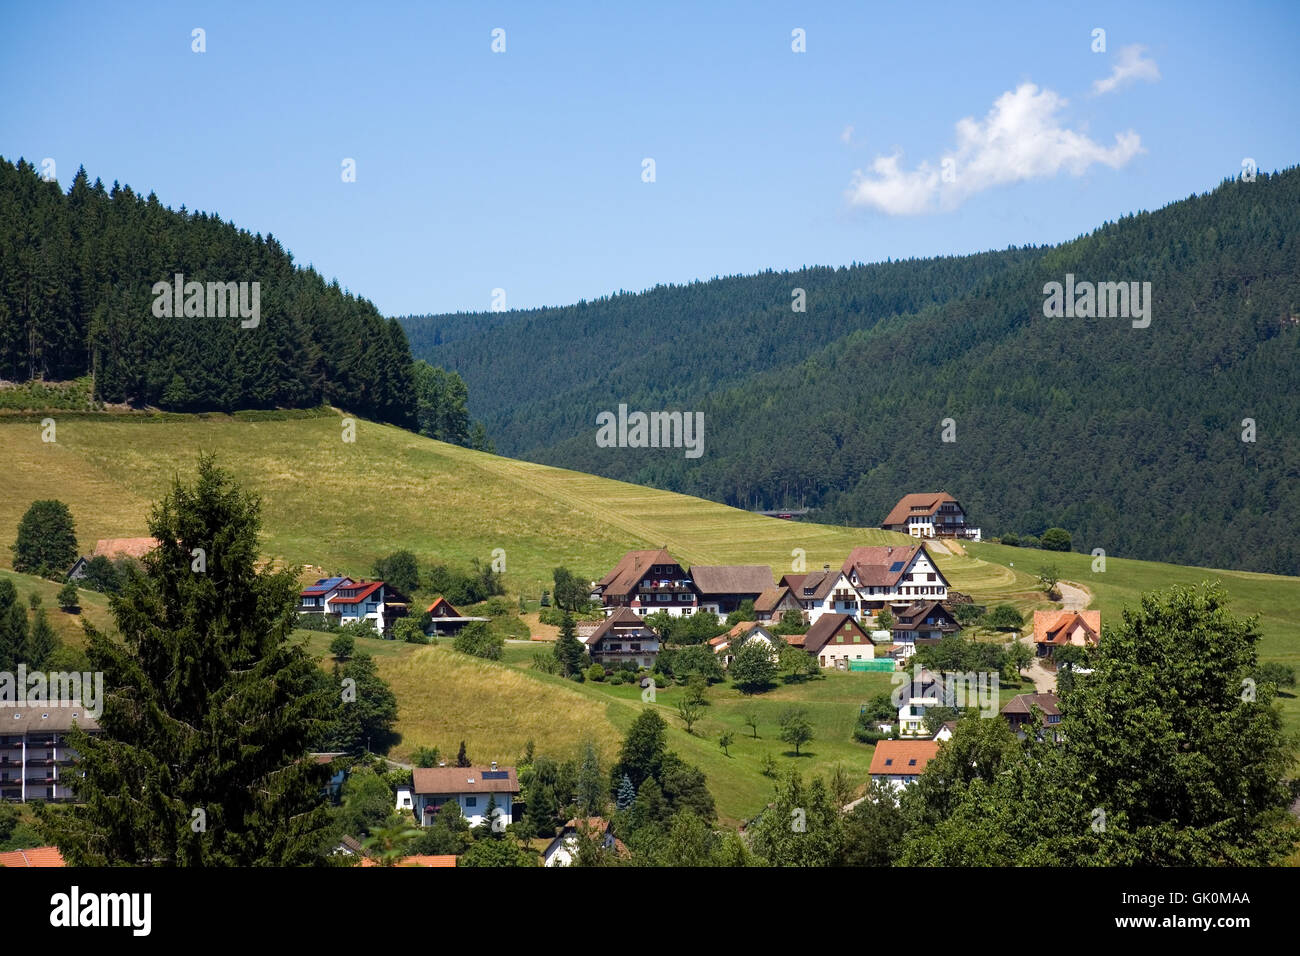 conifer black forest style of construction - Stock Image